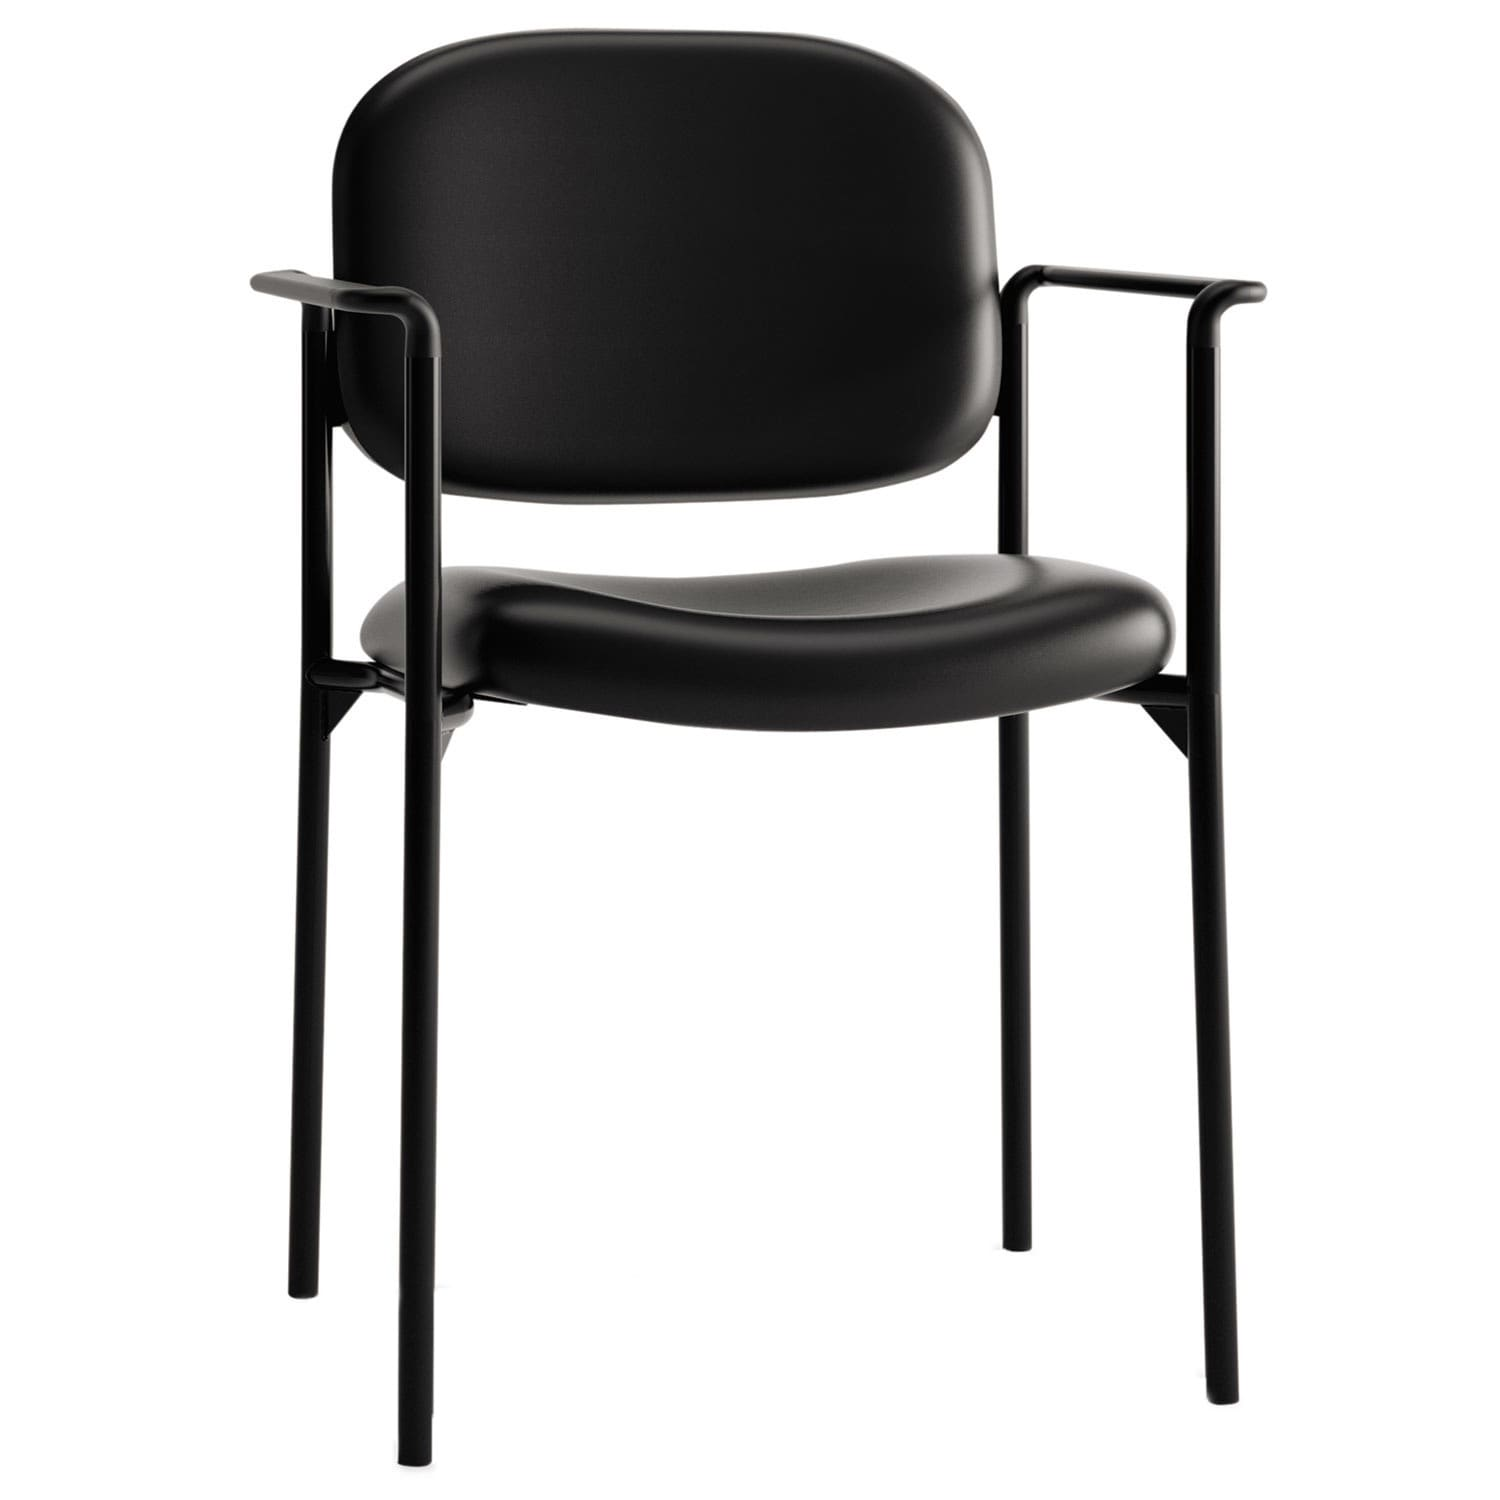 BASYX by HON VL616 Series Black Leather Stacking Guest Ch...